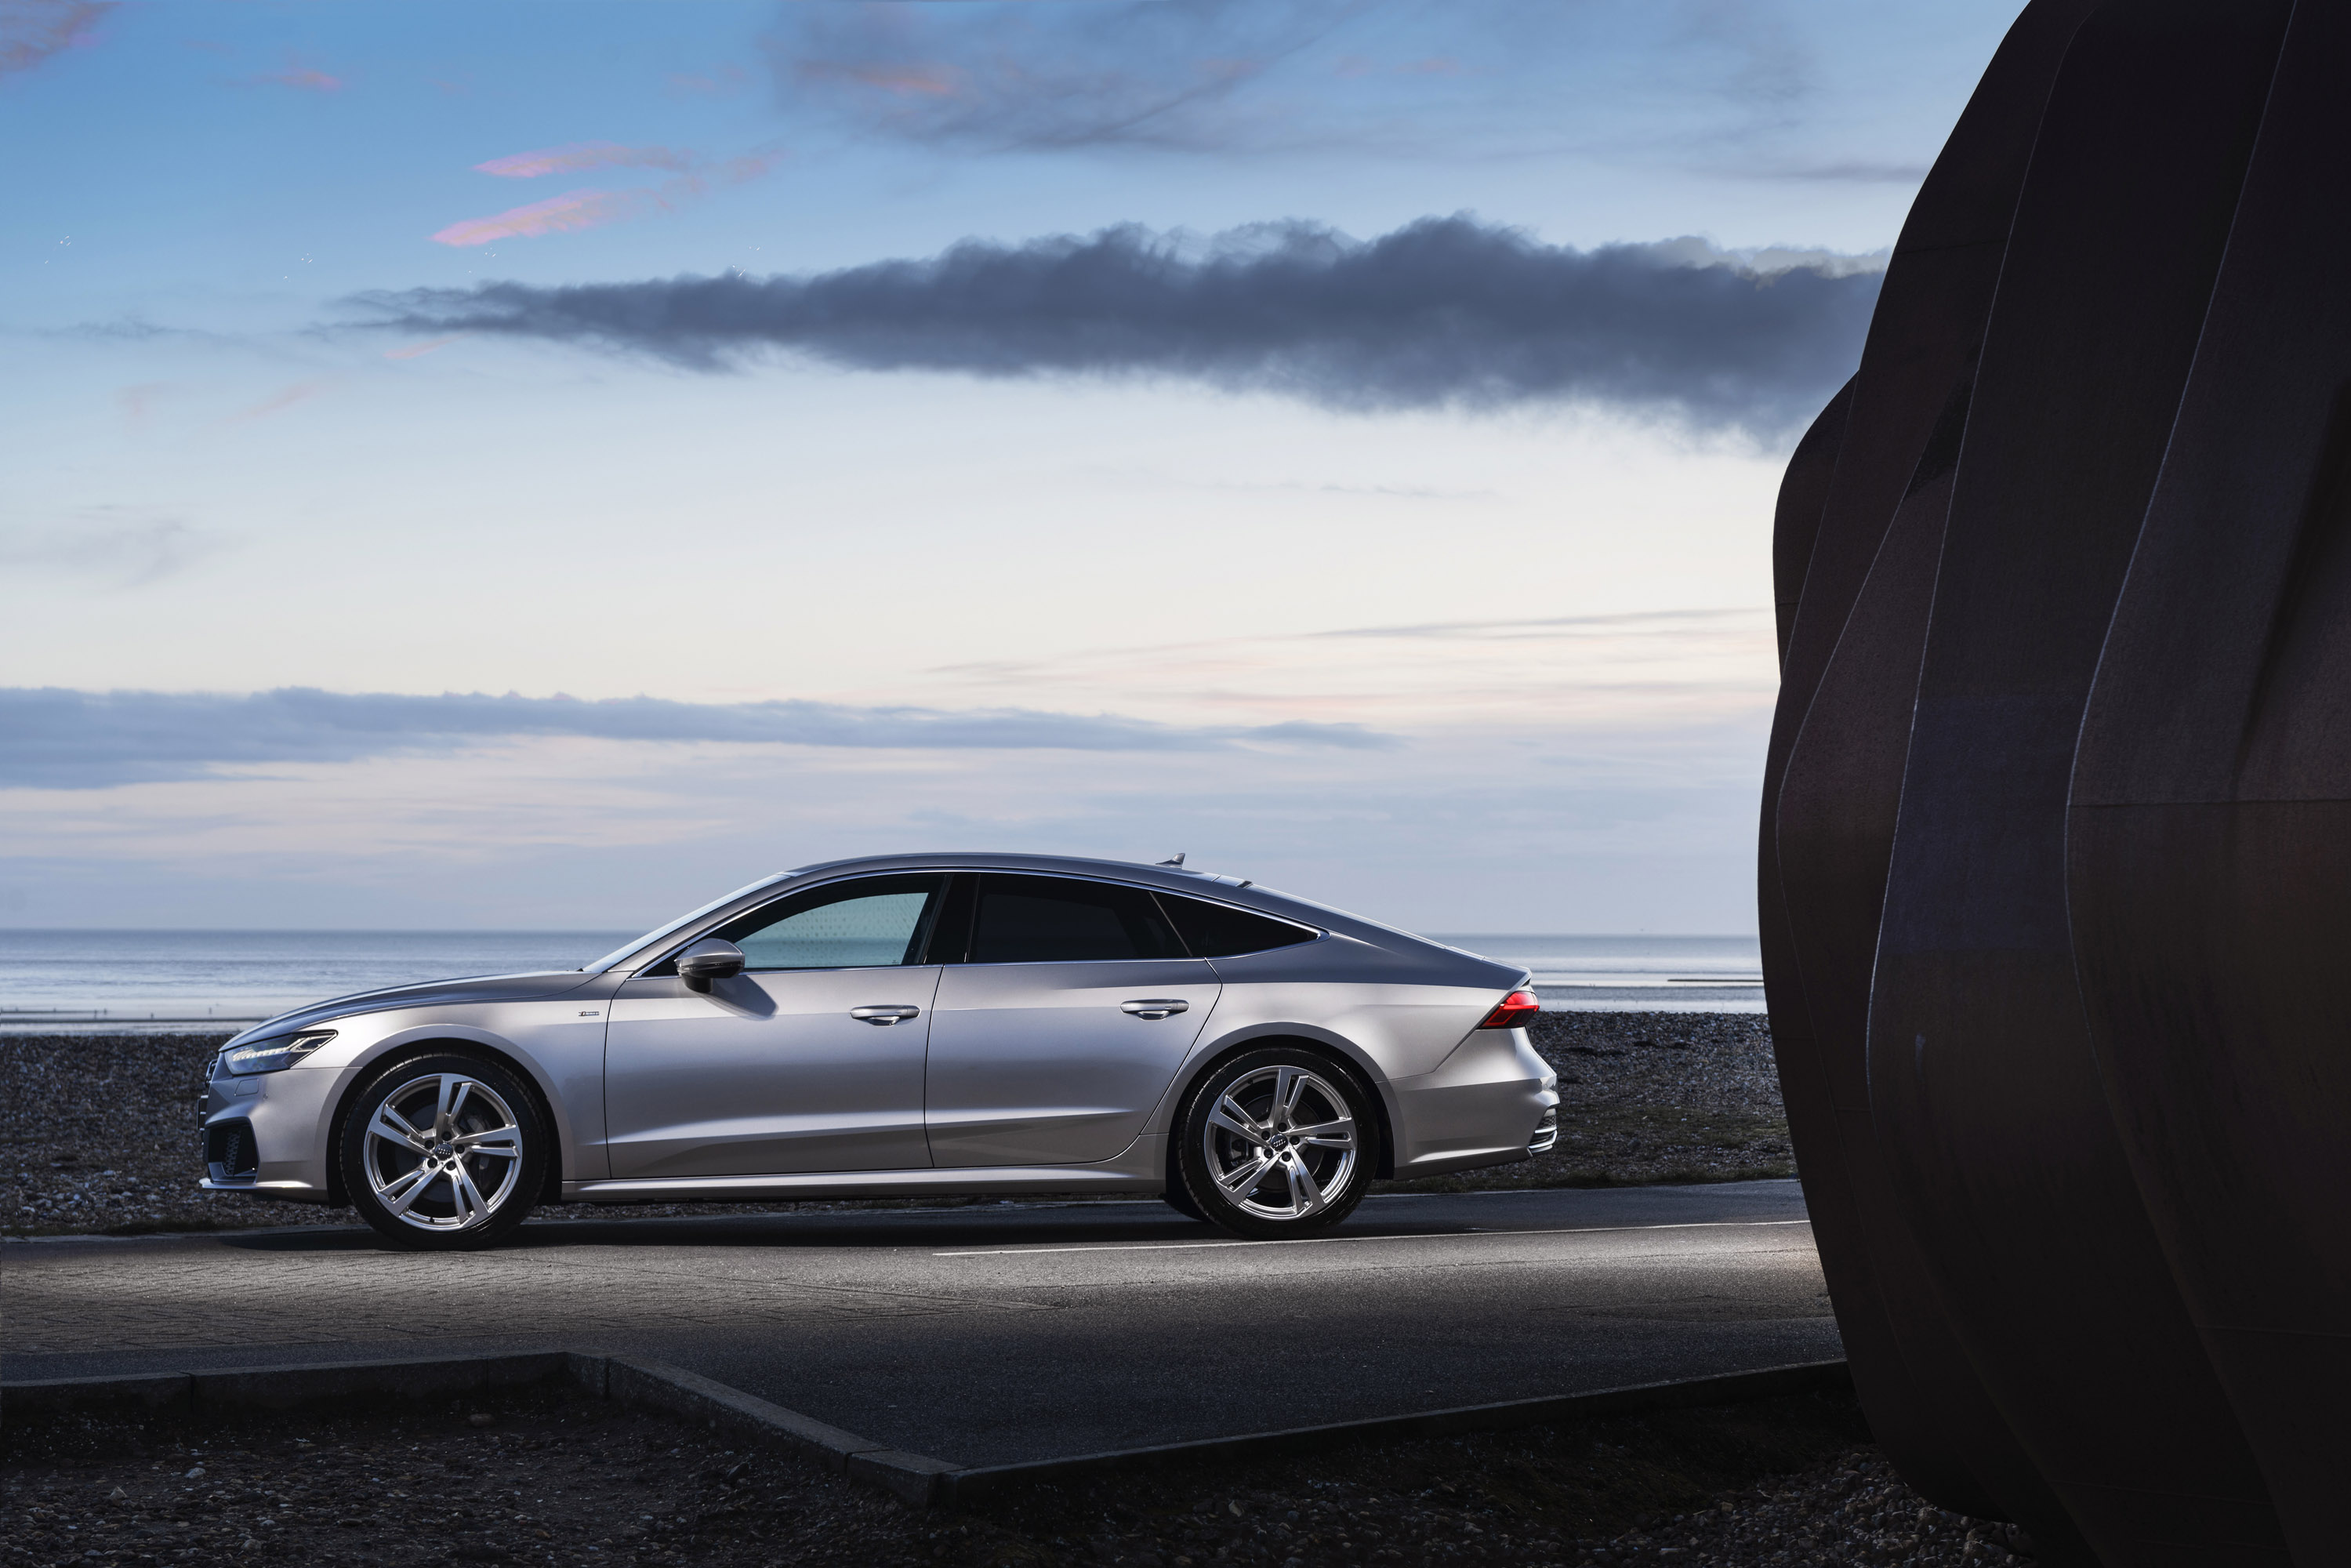 2018 Audi A7 Sportback 45 TDI Quattro is out later this year